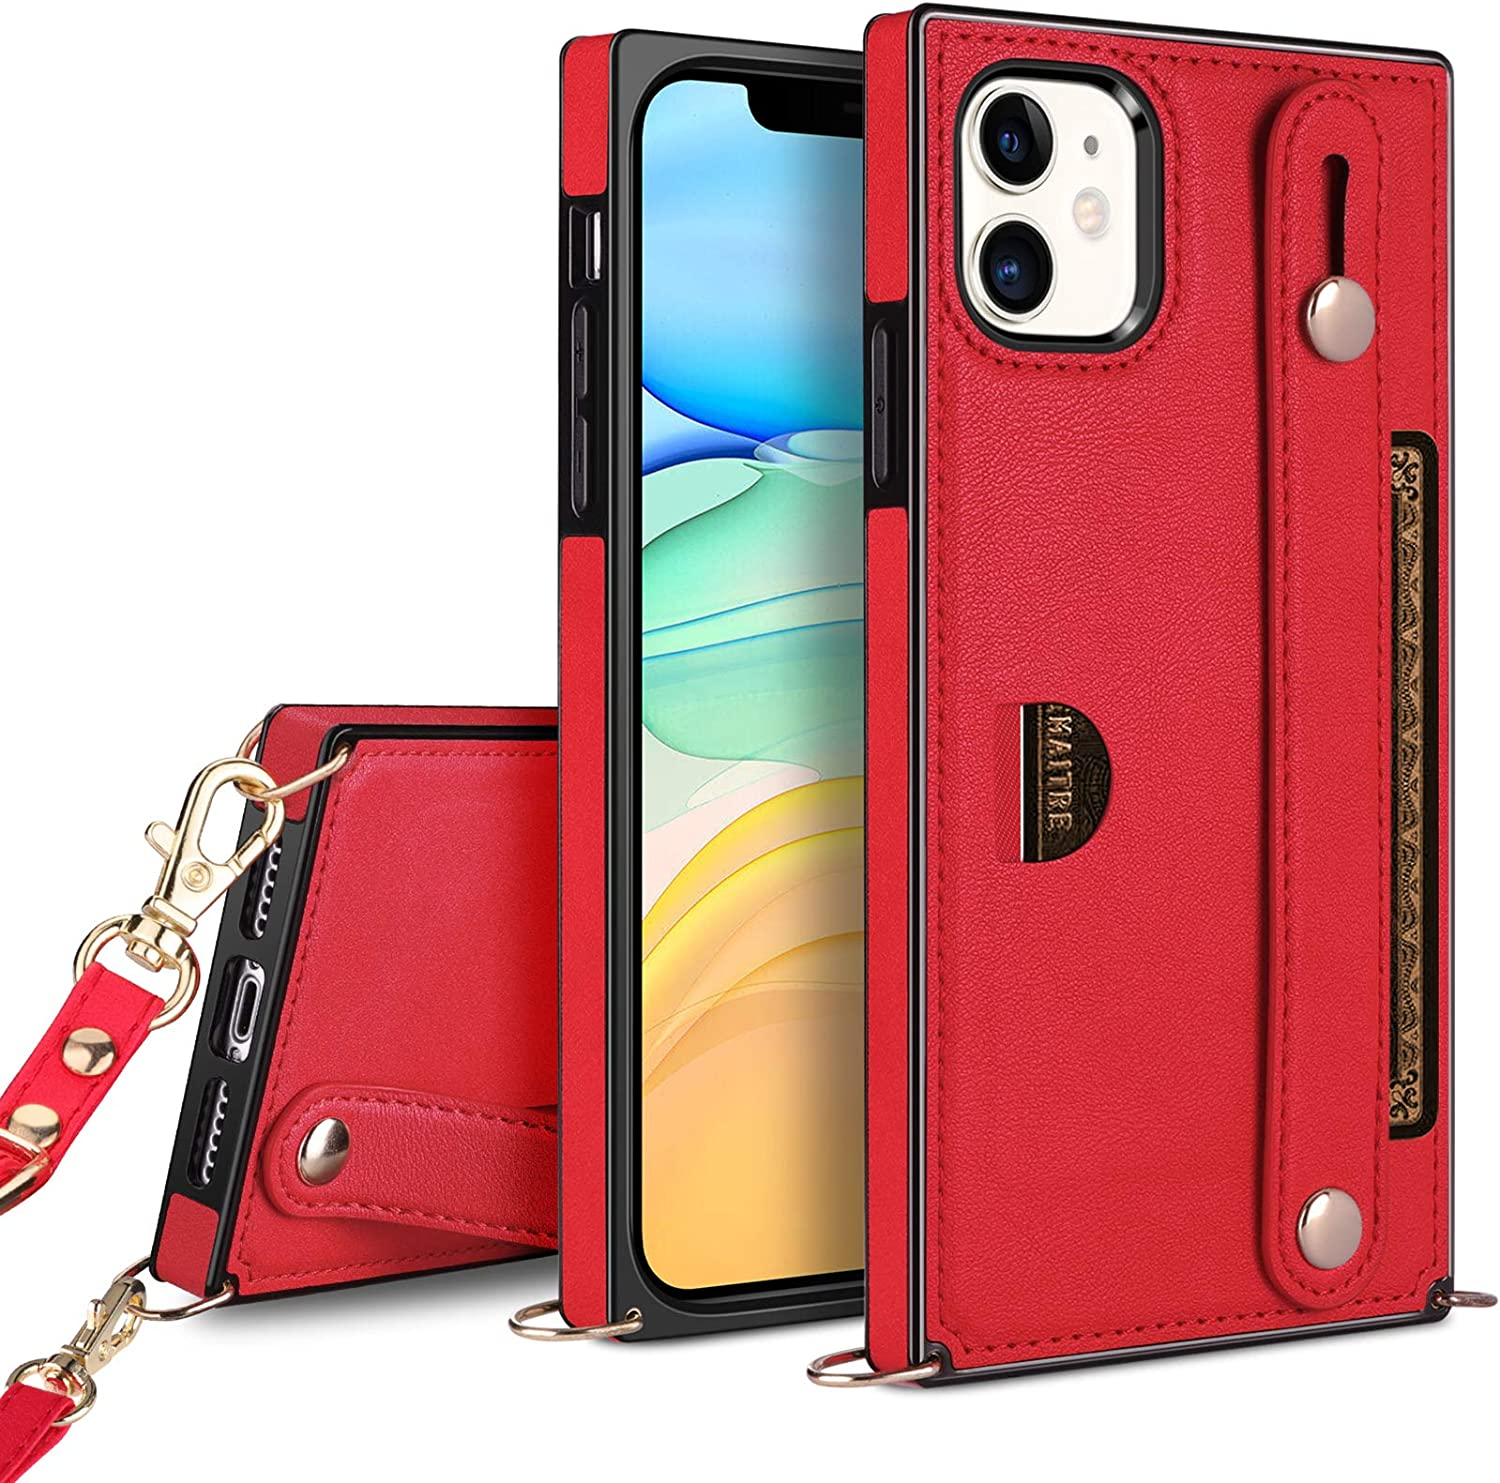 HianDier Compatible with iPhone 11 6.1-Inch Wallet Case Slim Protective Case with Hand Strap Holder Kickstand Lanyard Credit Card Slot Soft PU Leather Square Cover, Red